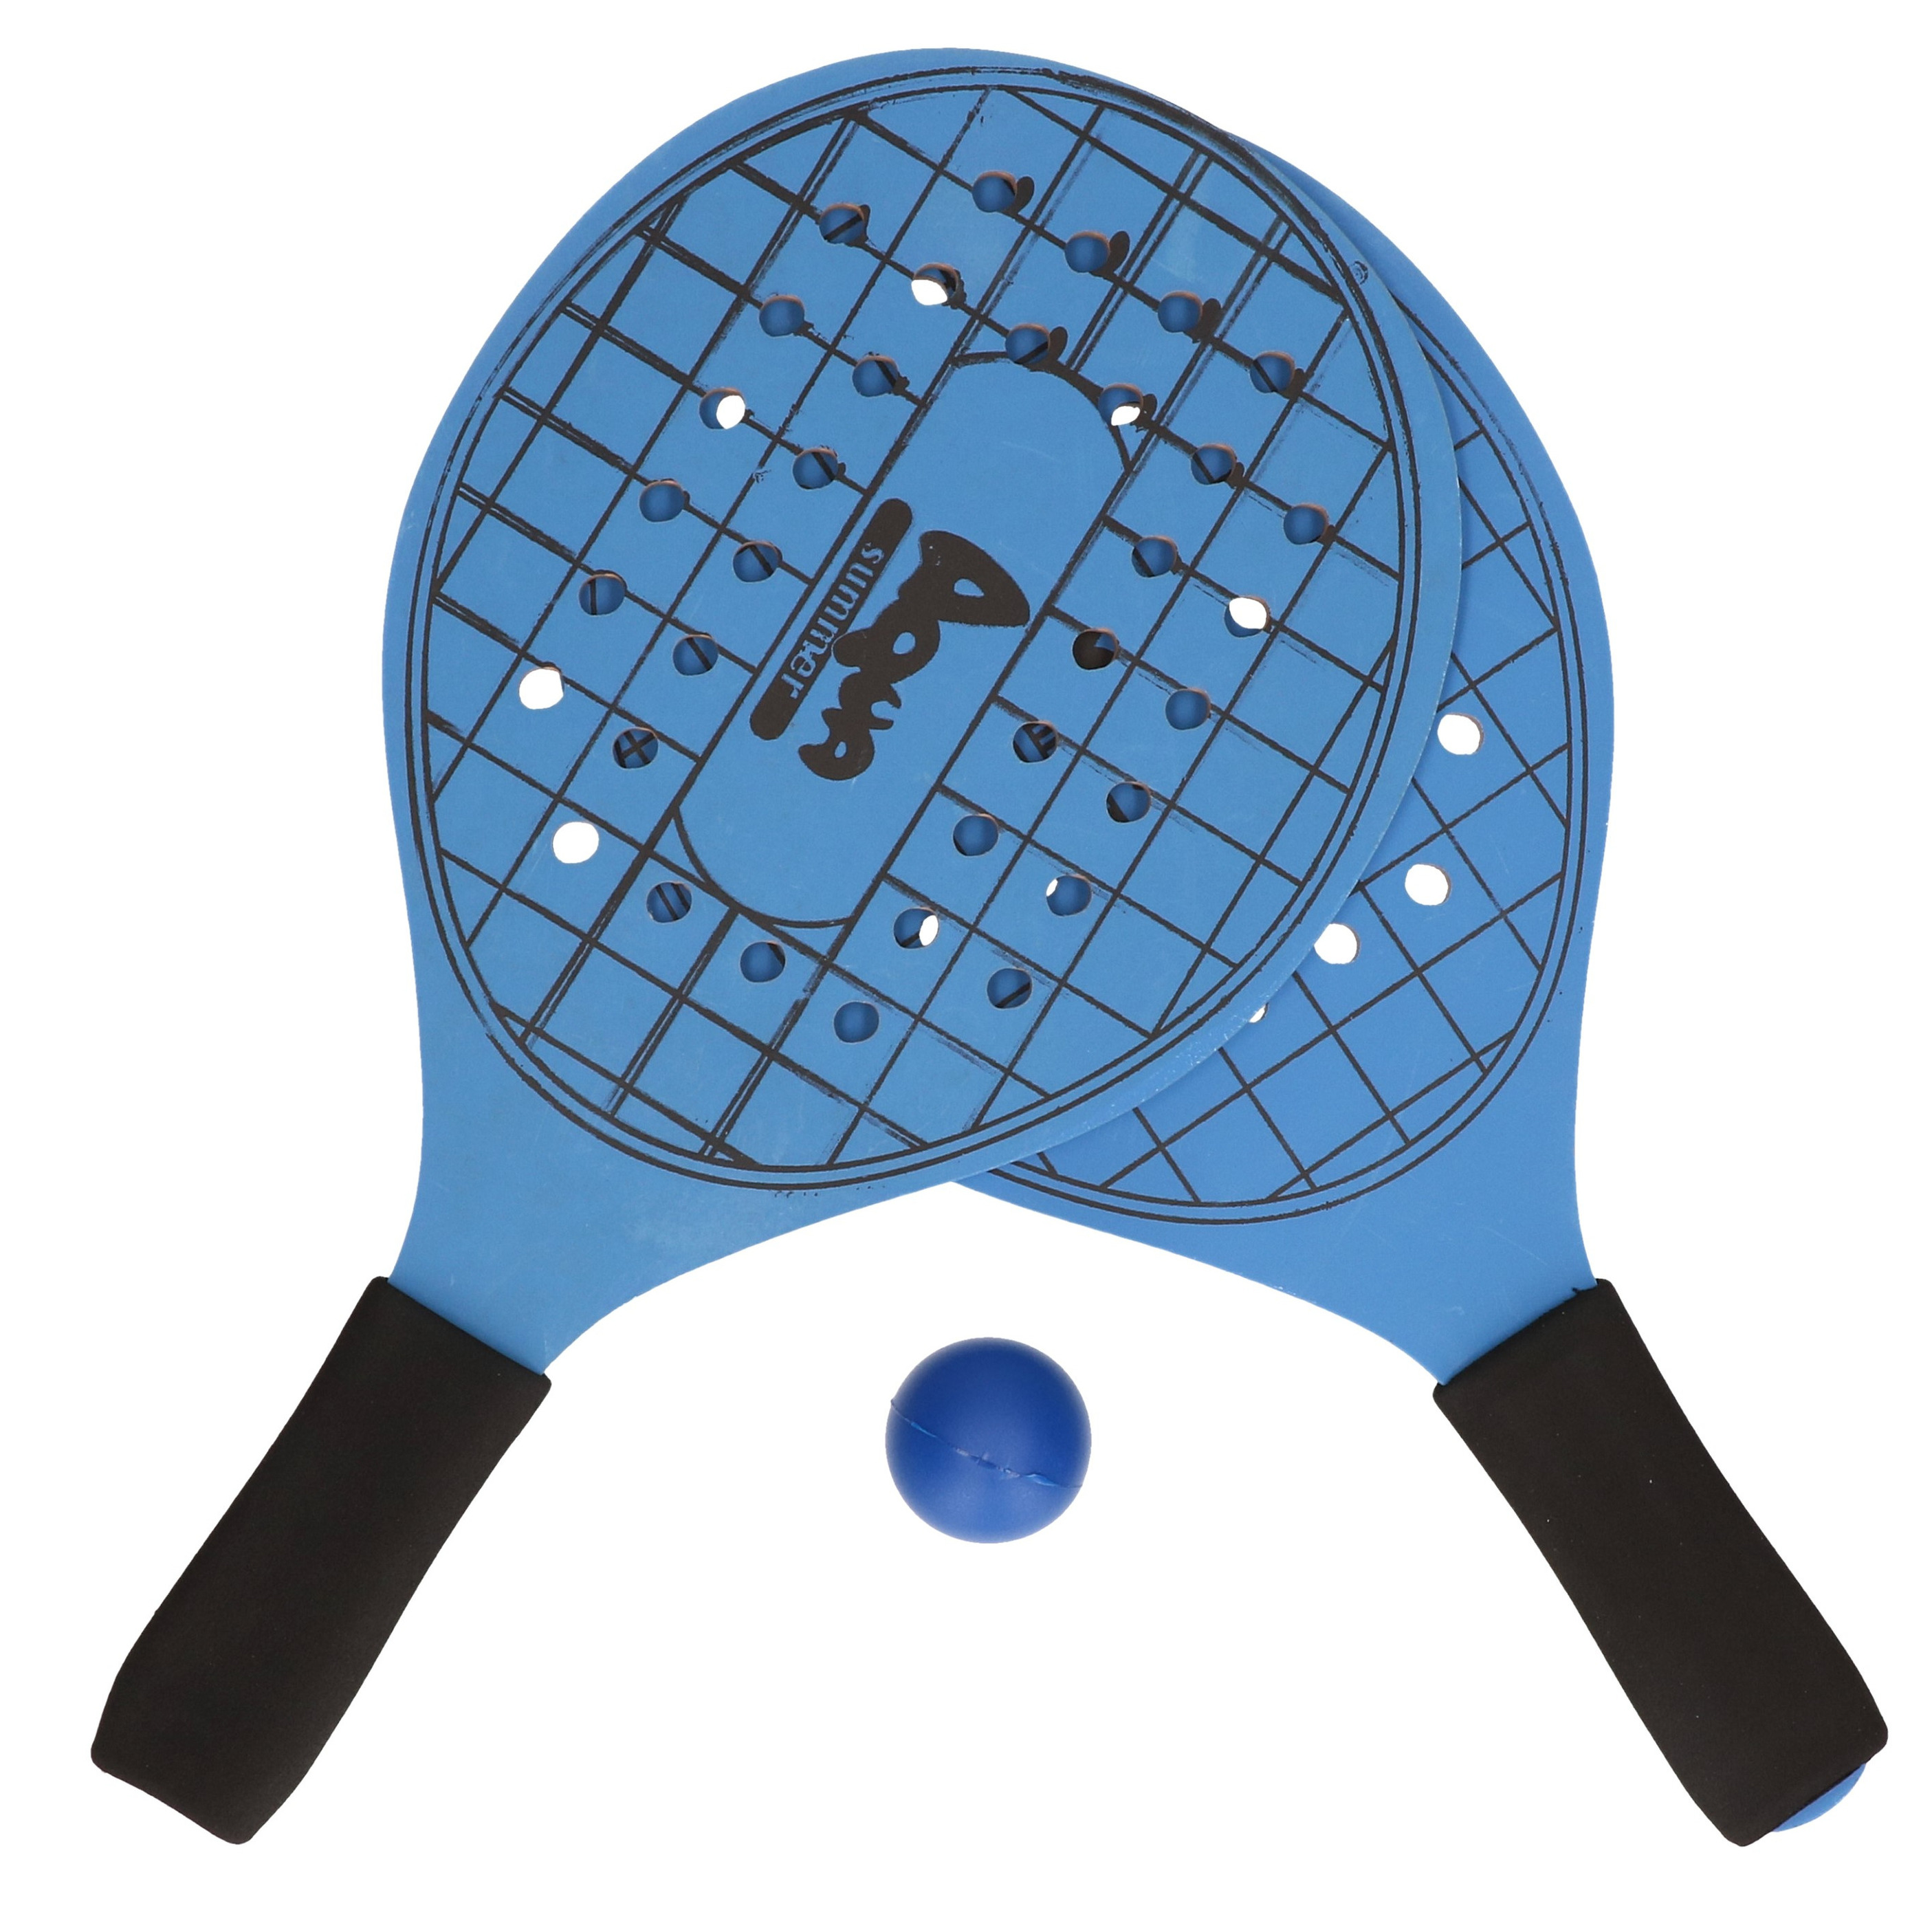 Blauwe beachball set met tennisracketprint buitenspeelgoed